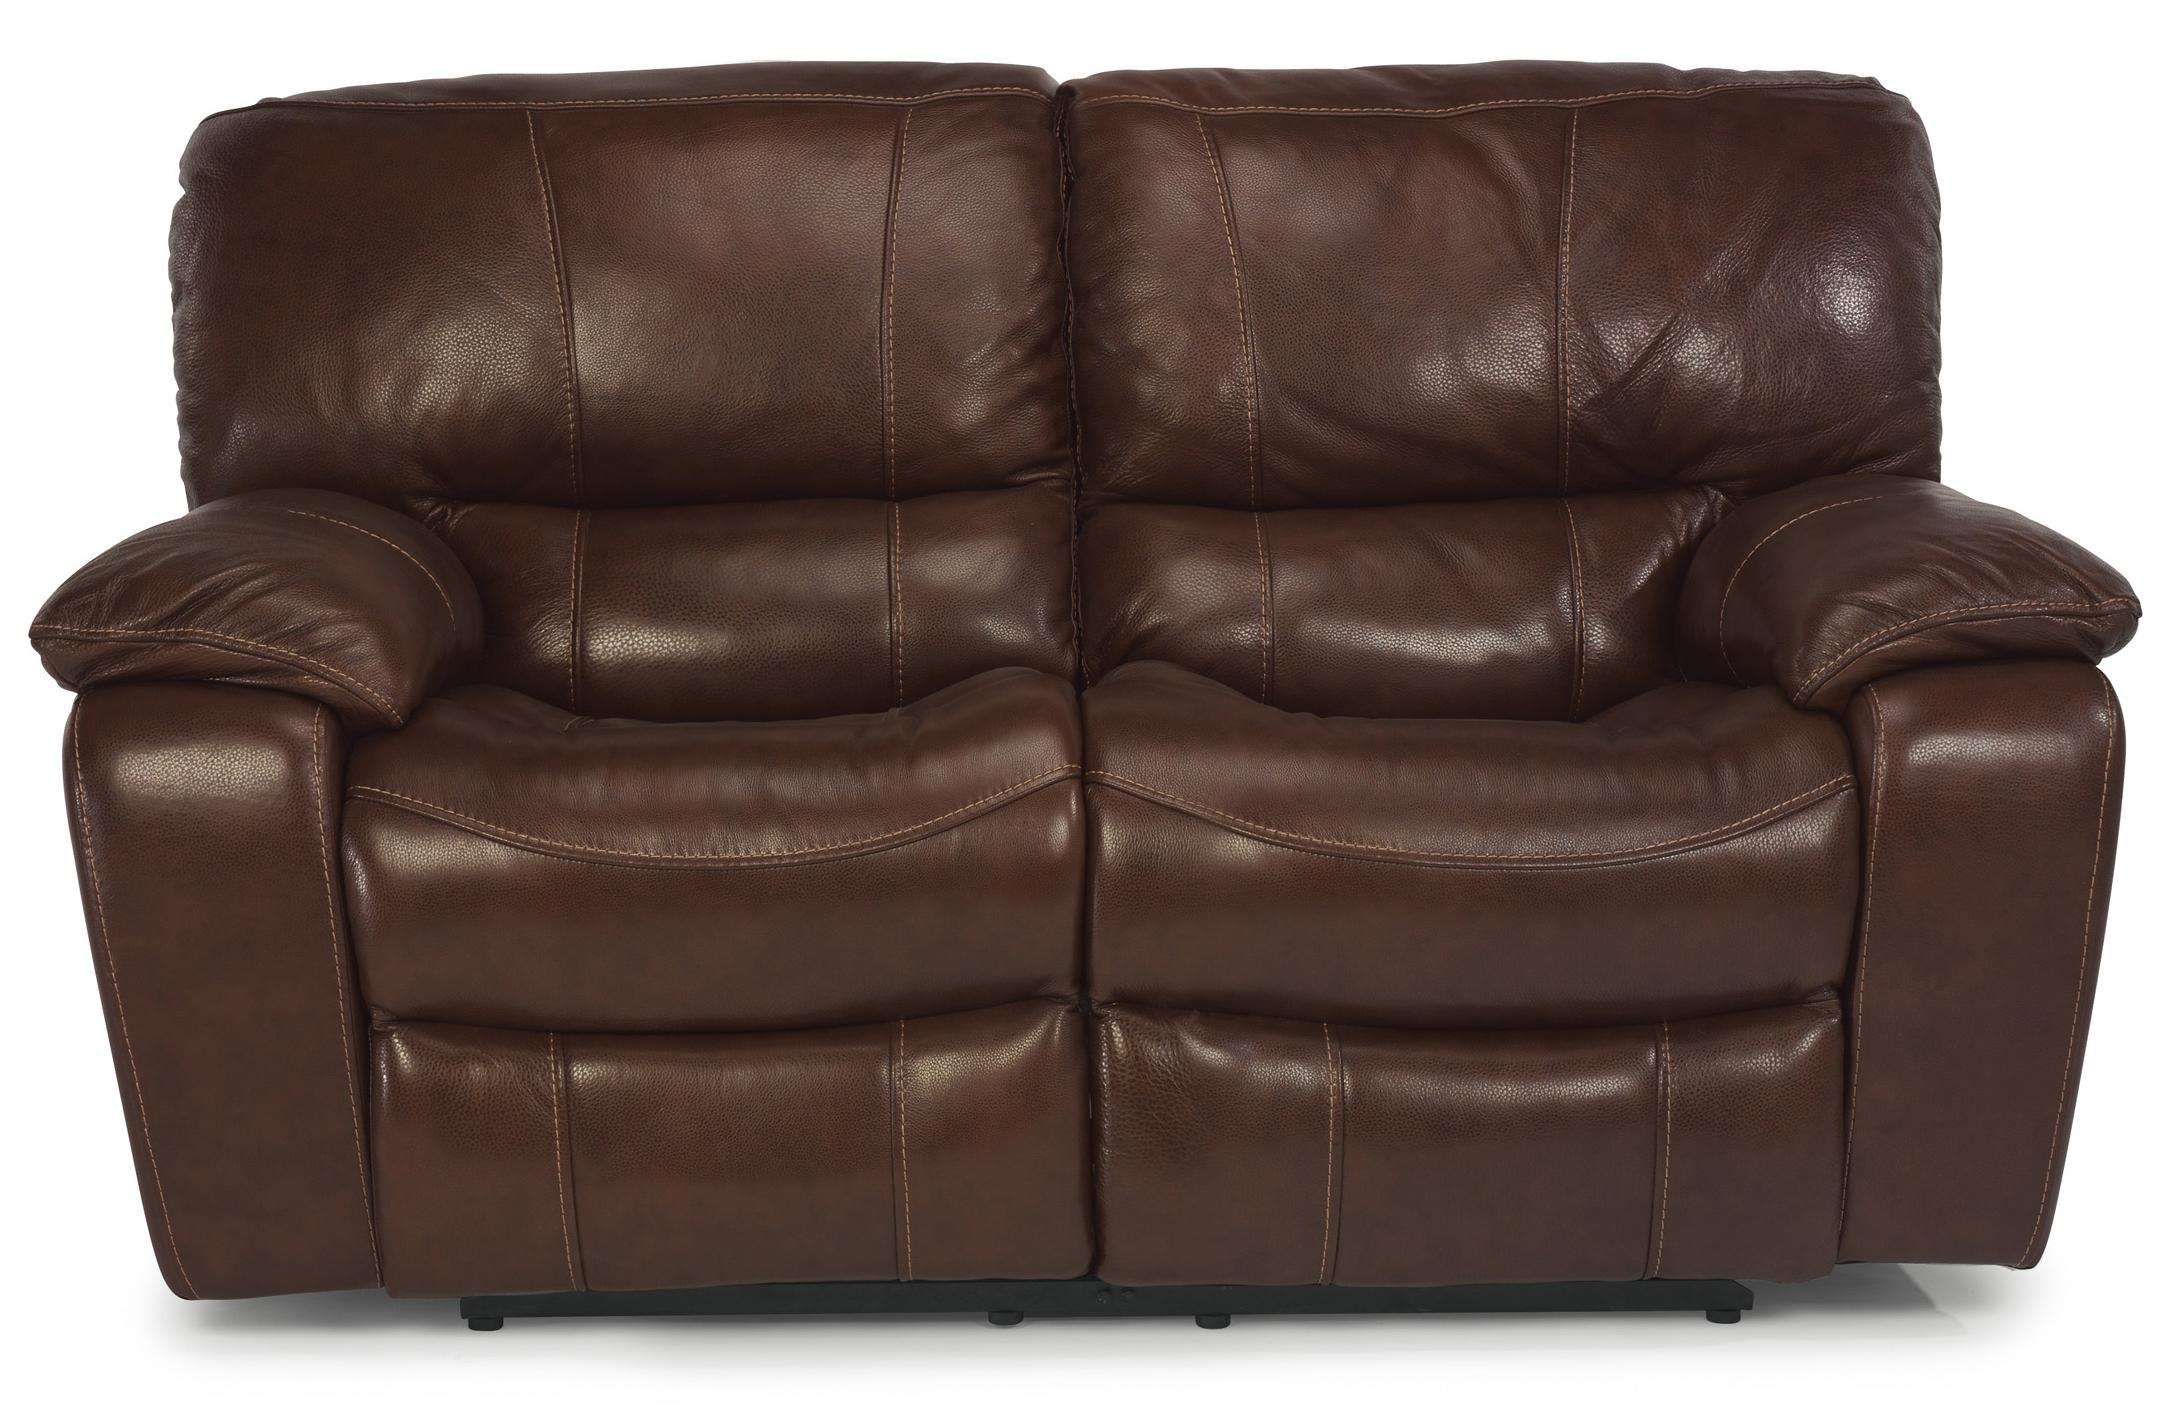 Flexsteel Latitudes - Grandview Power Reclining Love Seat - Item Number: 1241-60P